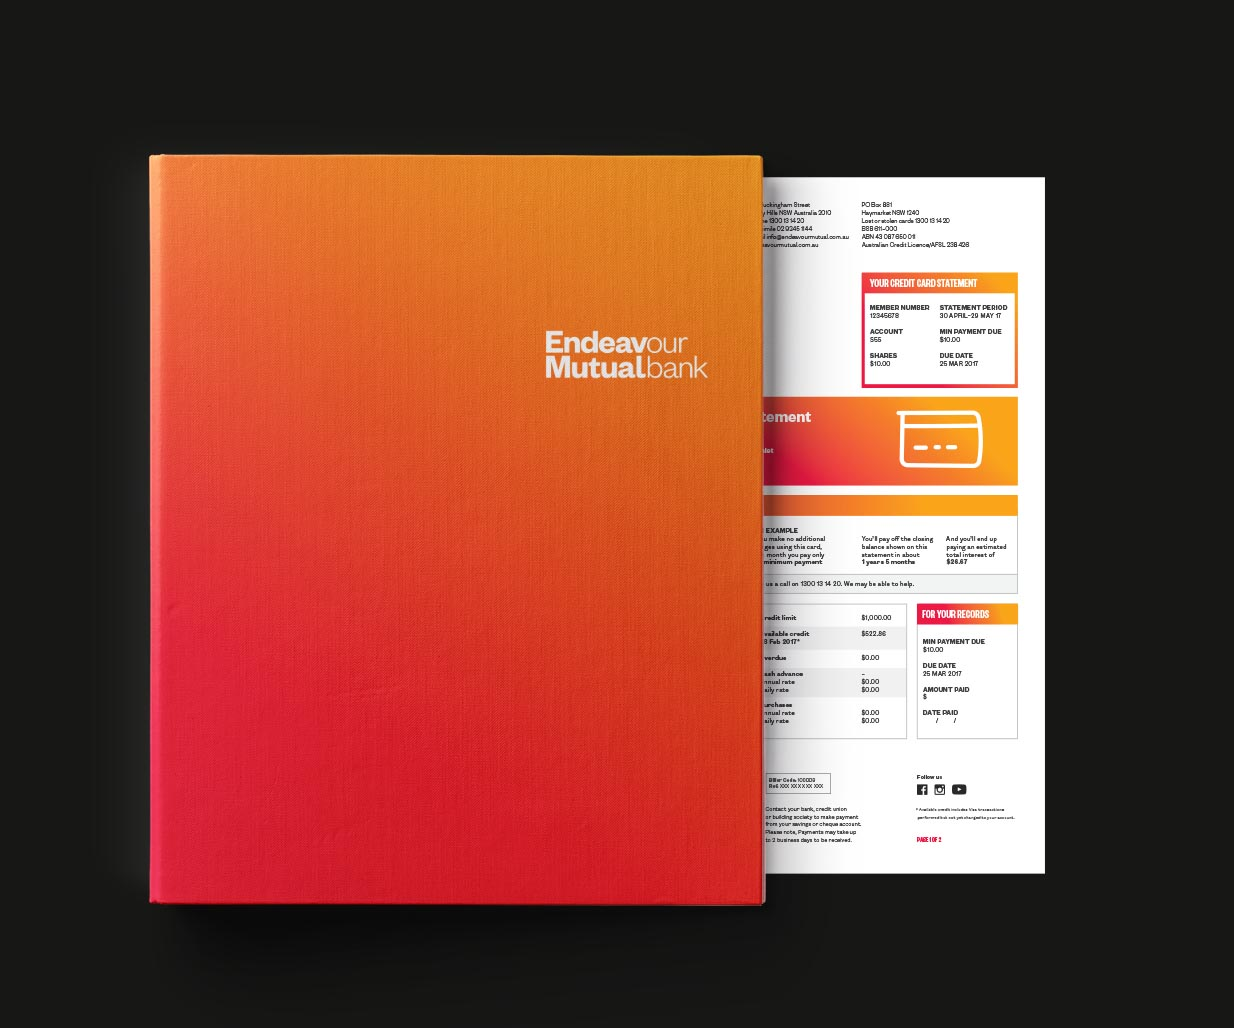 Rebranding, Brand Identity Design & Roll-out project for financial services company, Endeavour Mutual Bank, Sydney, Australia, image P